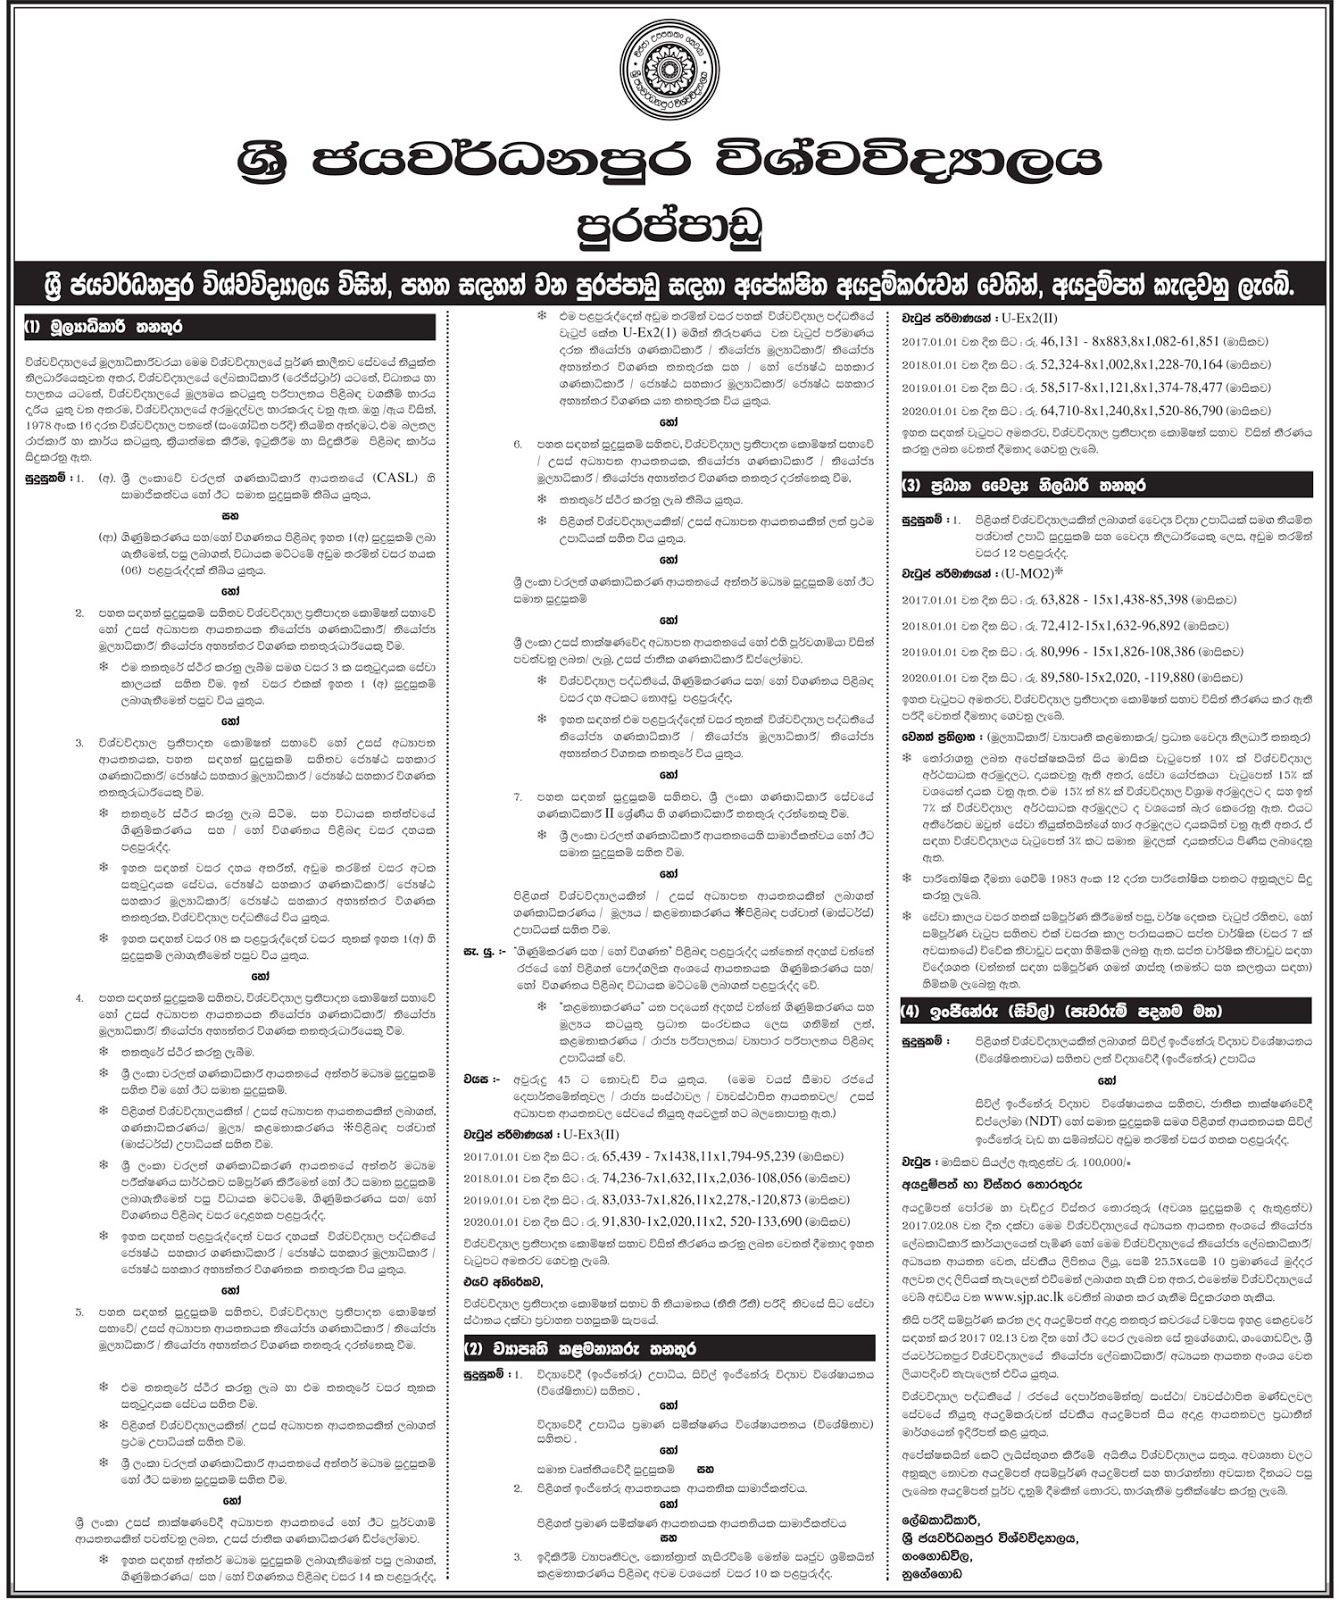 Sri Lankan Government Job Vacancies At University Of Sri